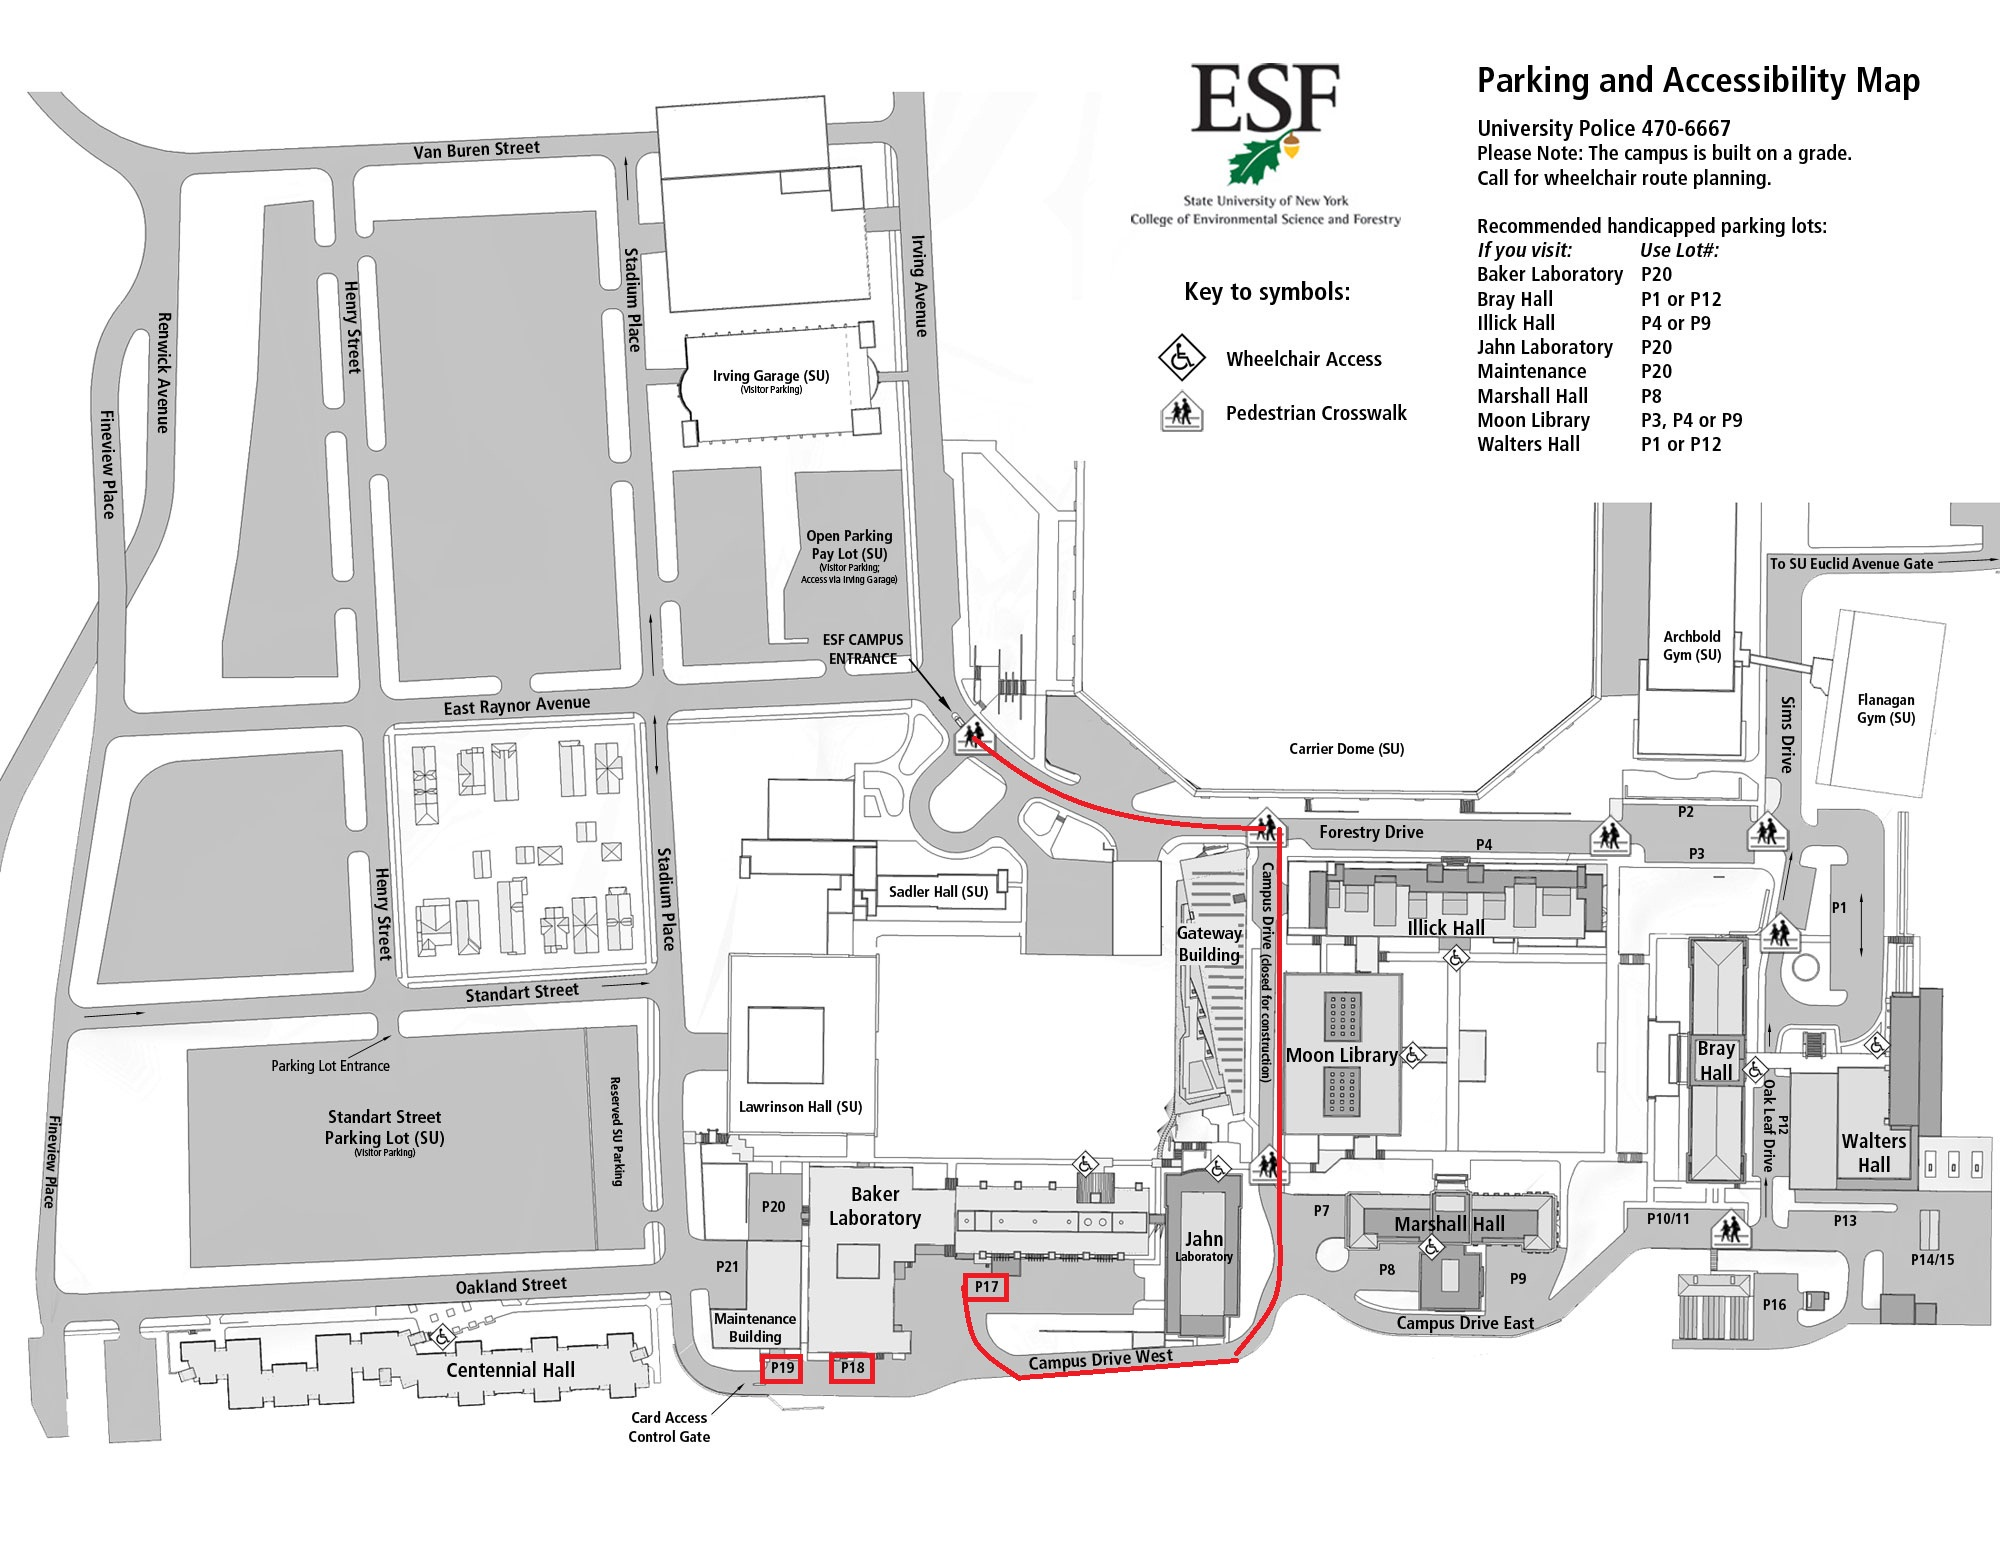 Parking Map - http://www.esf.edu/financialaid/publications/parking.jpg